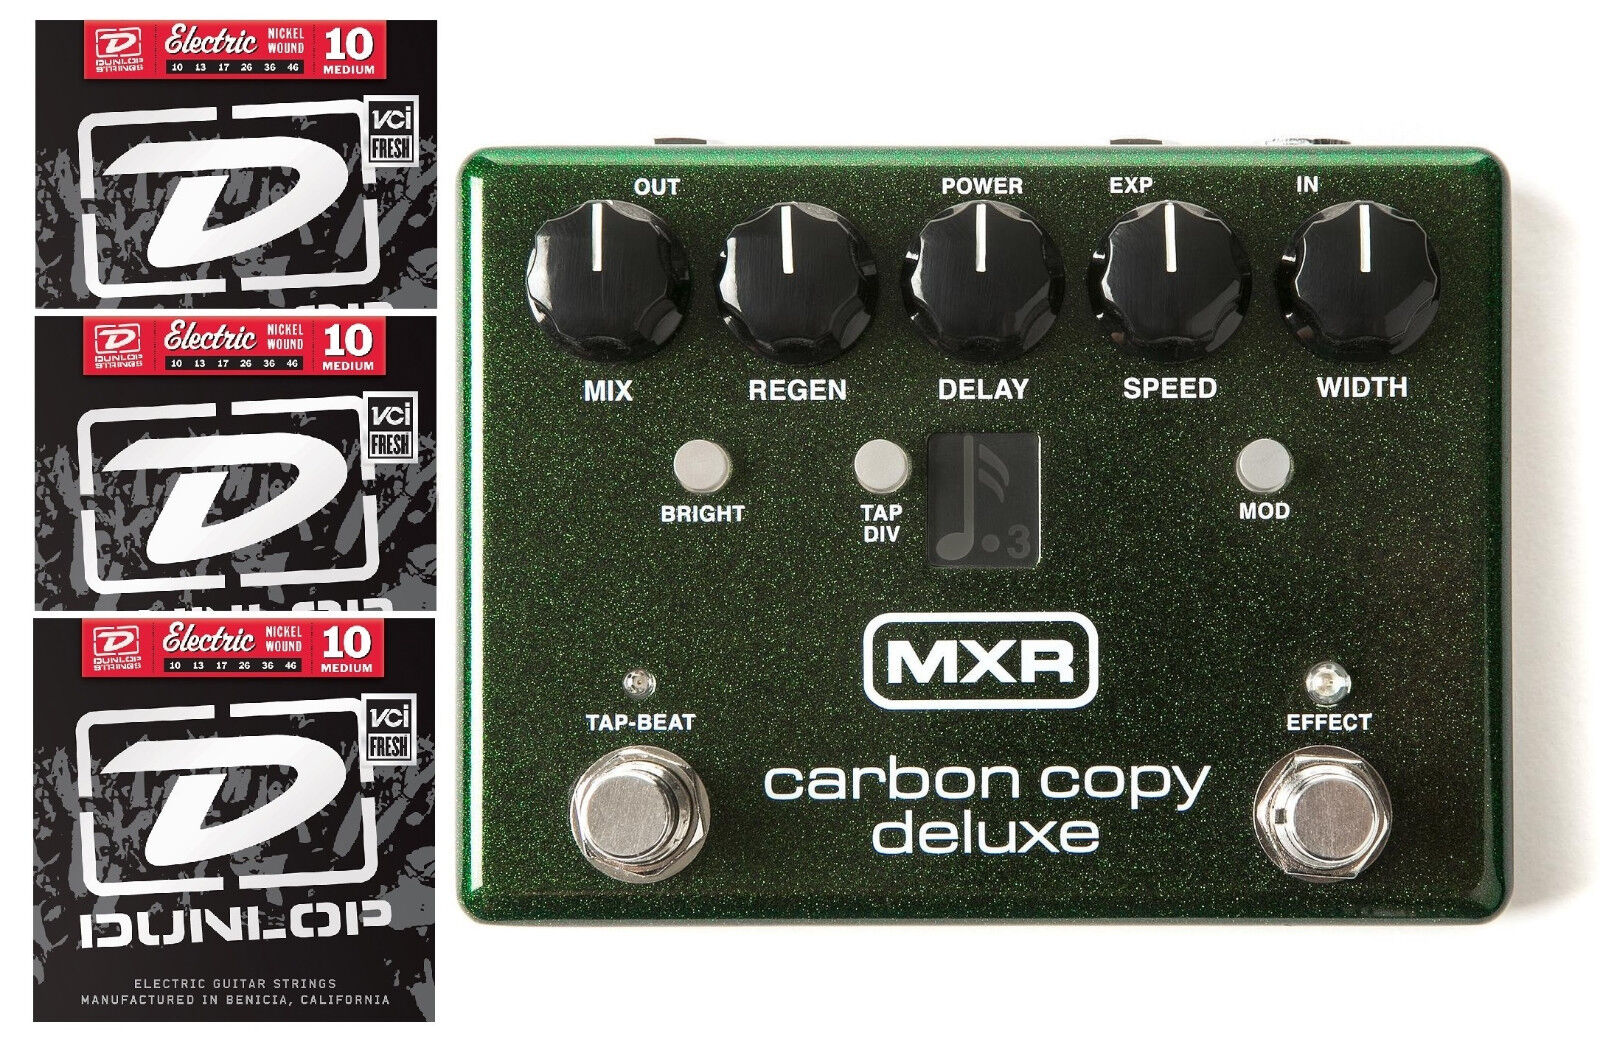 MXR Carbon Copy Deluxe Analog Delay Guitar Effects Pedal M292 ( 3 STRING SETS )